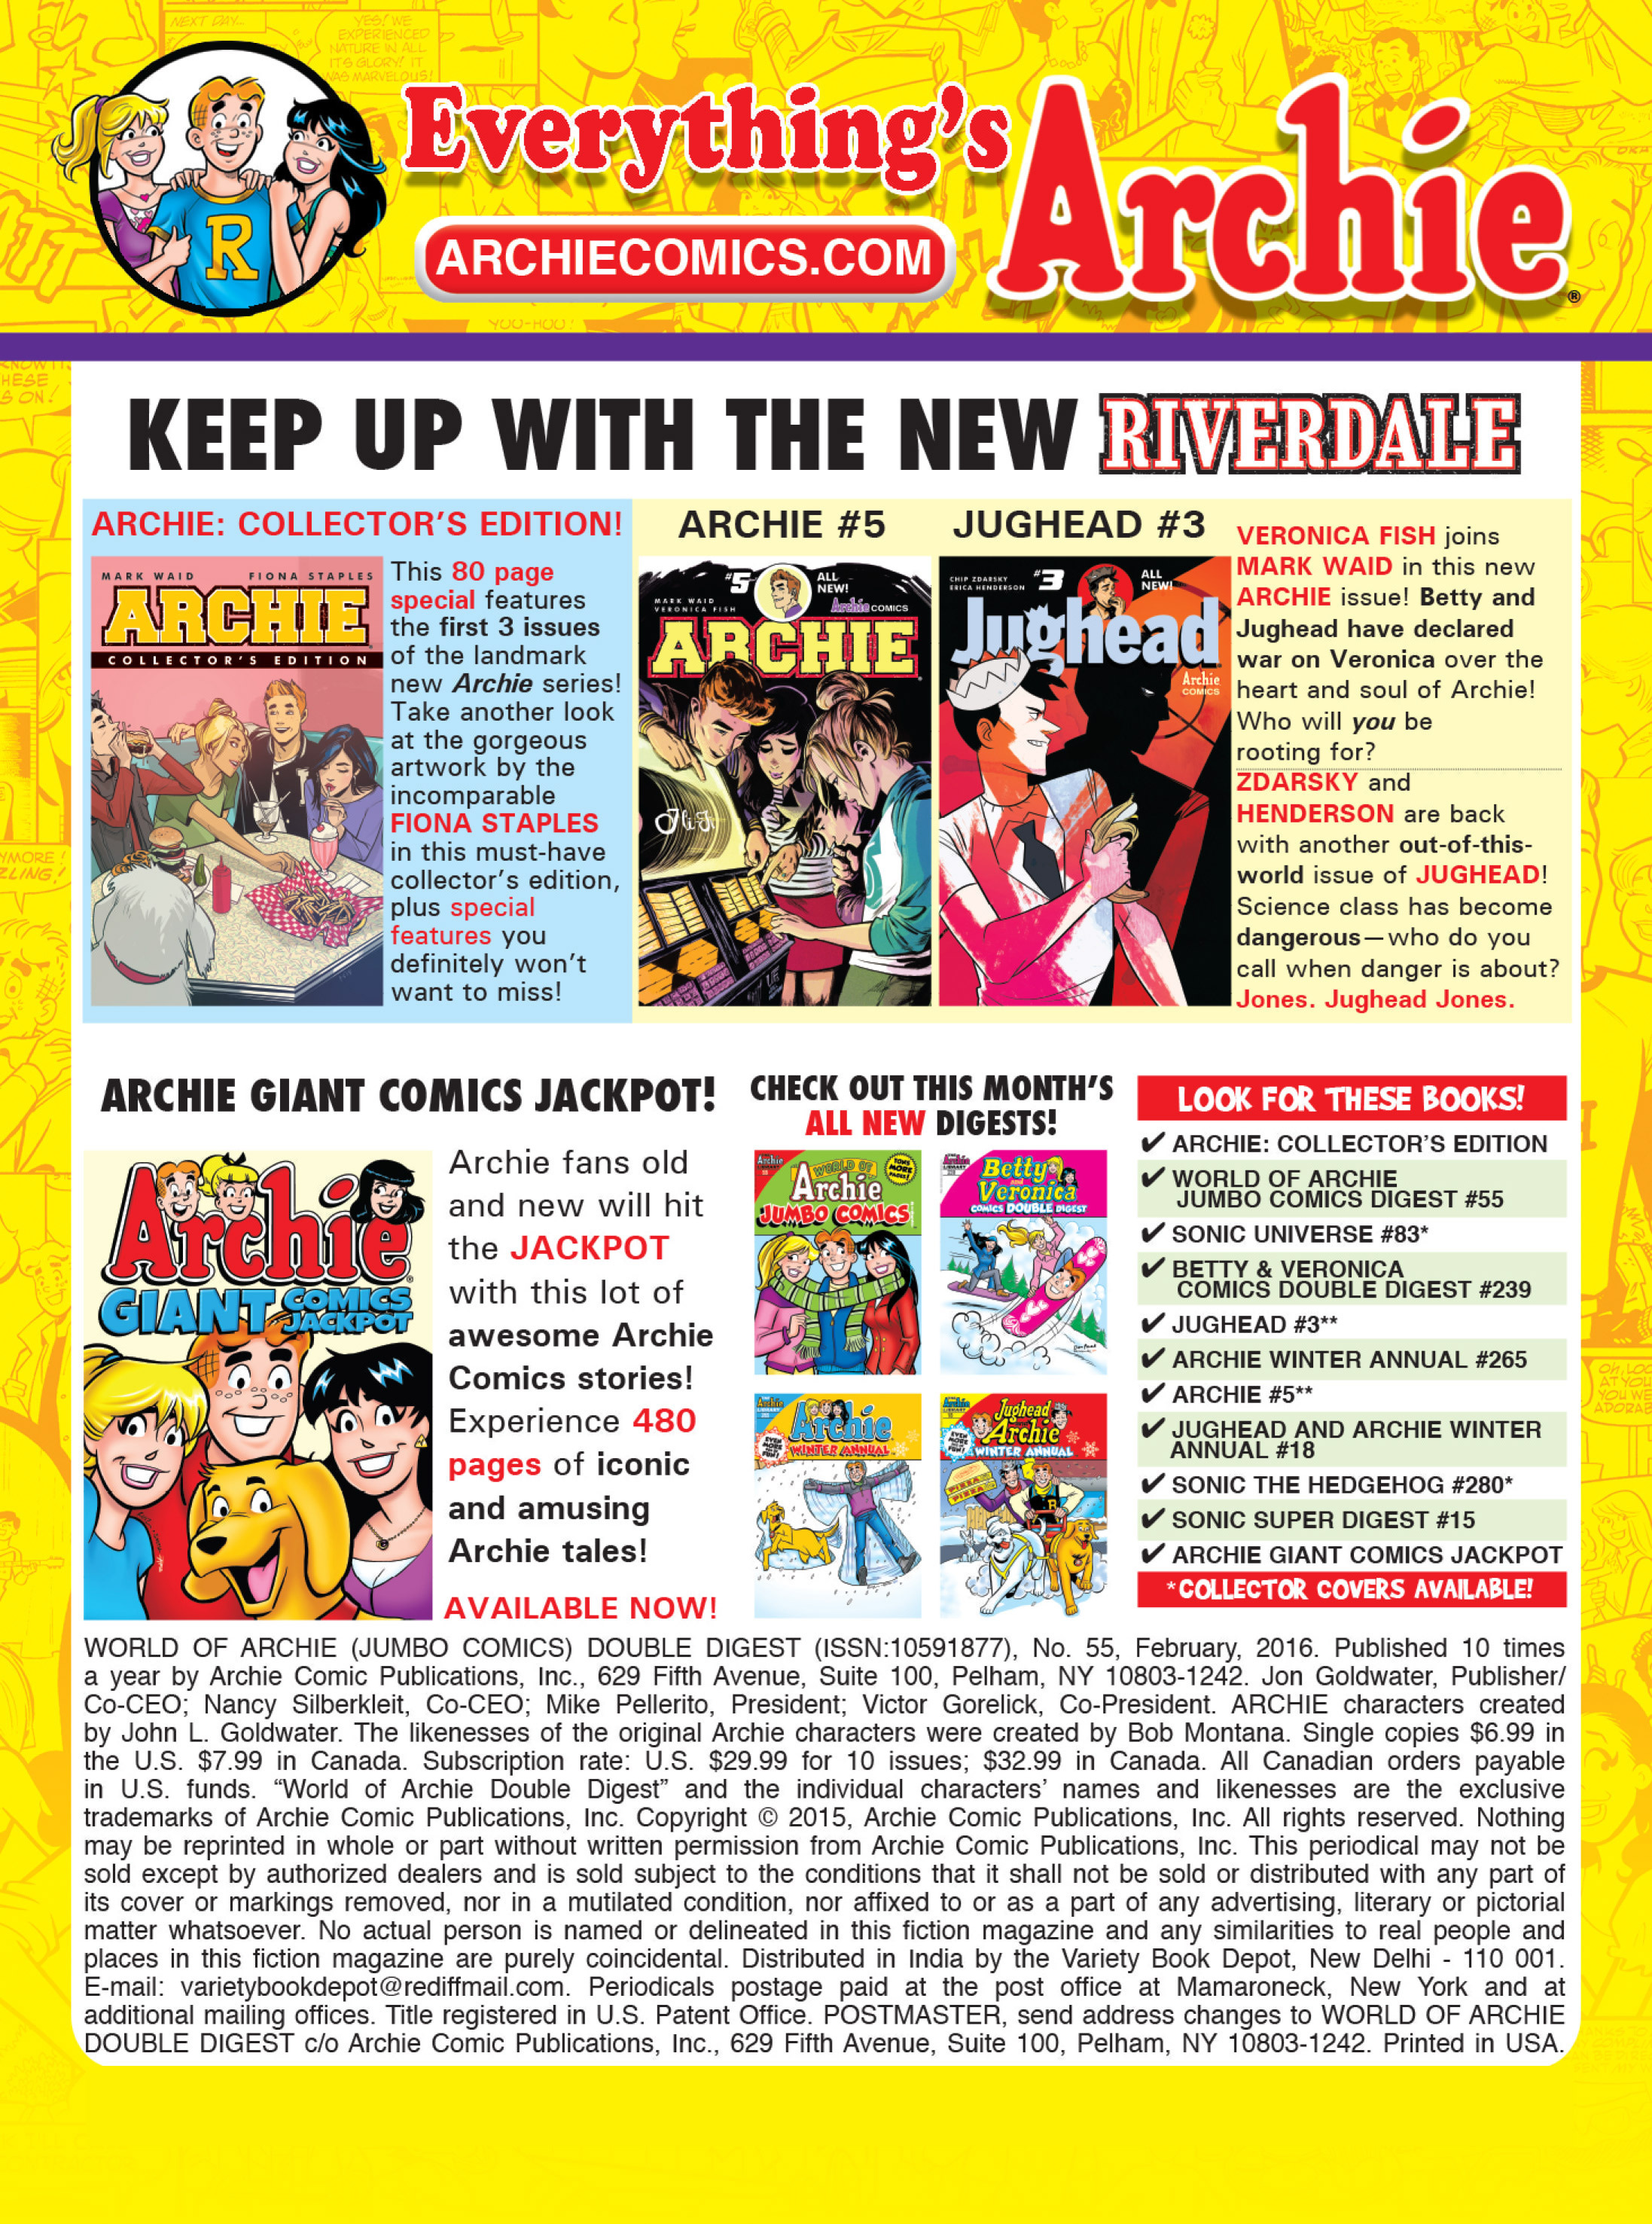 Read online World of Archie Double Digest comic -  Issue #55 - 249